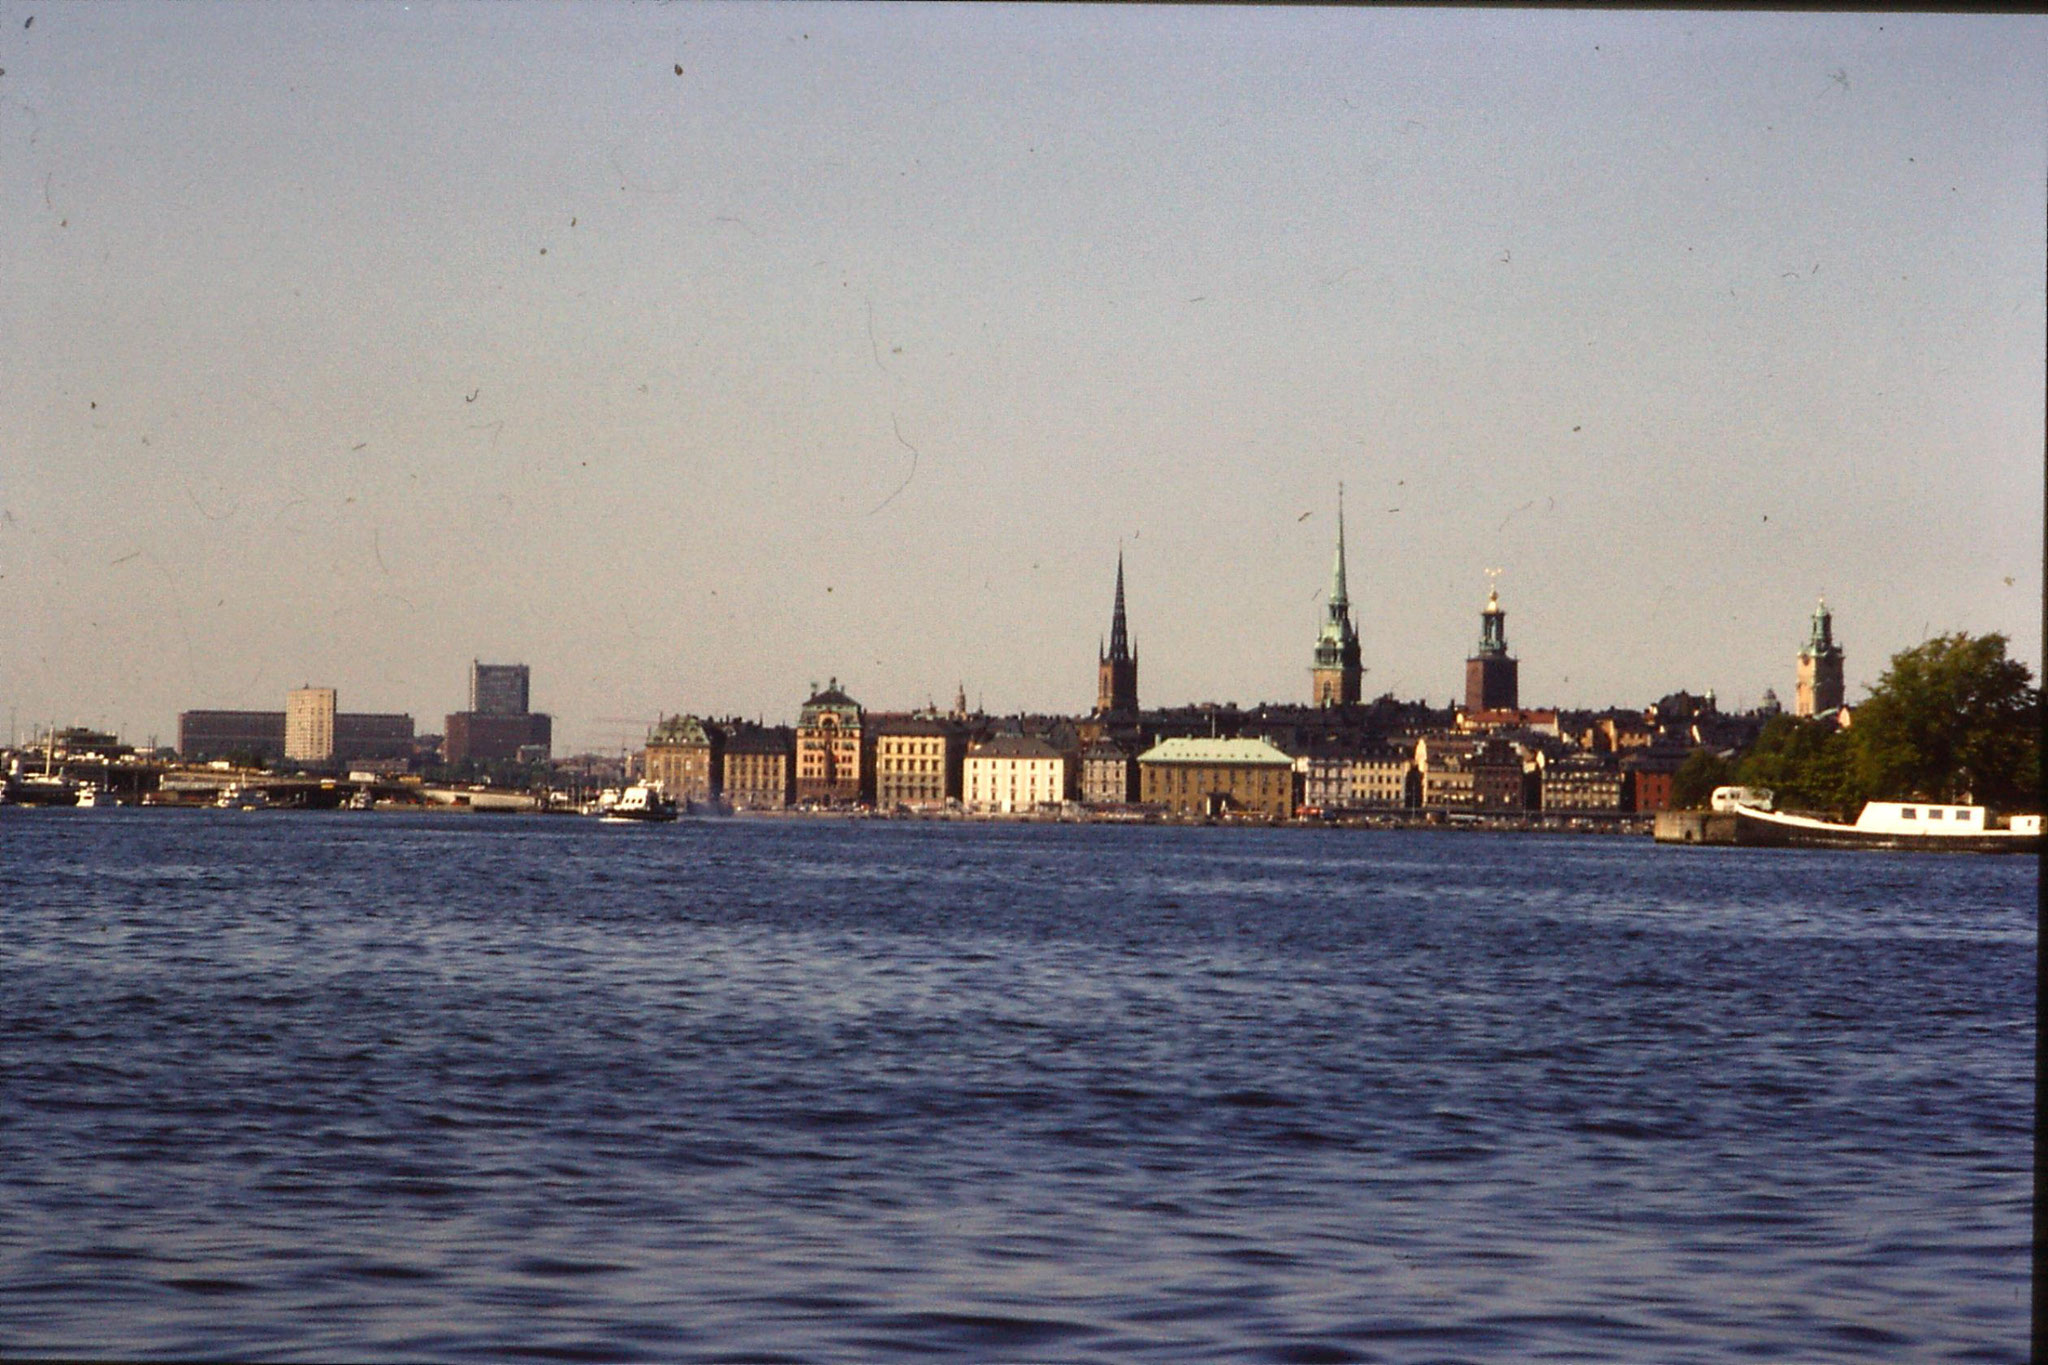 7/9/1988: 29: Stockholm Old Town from boat